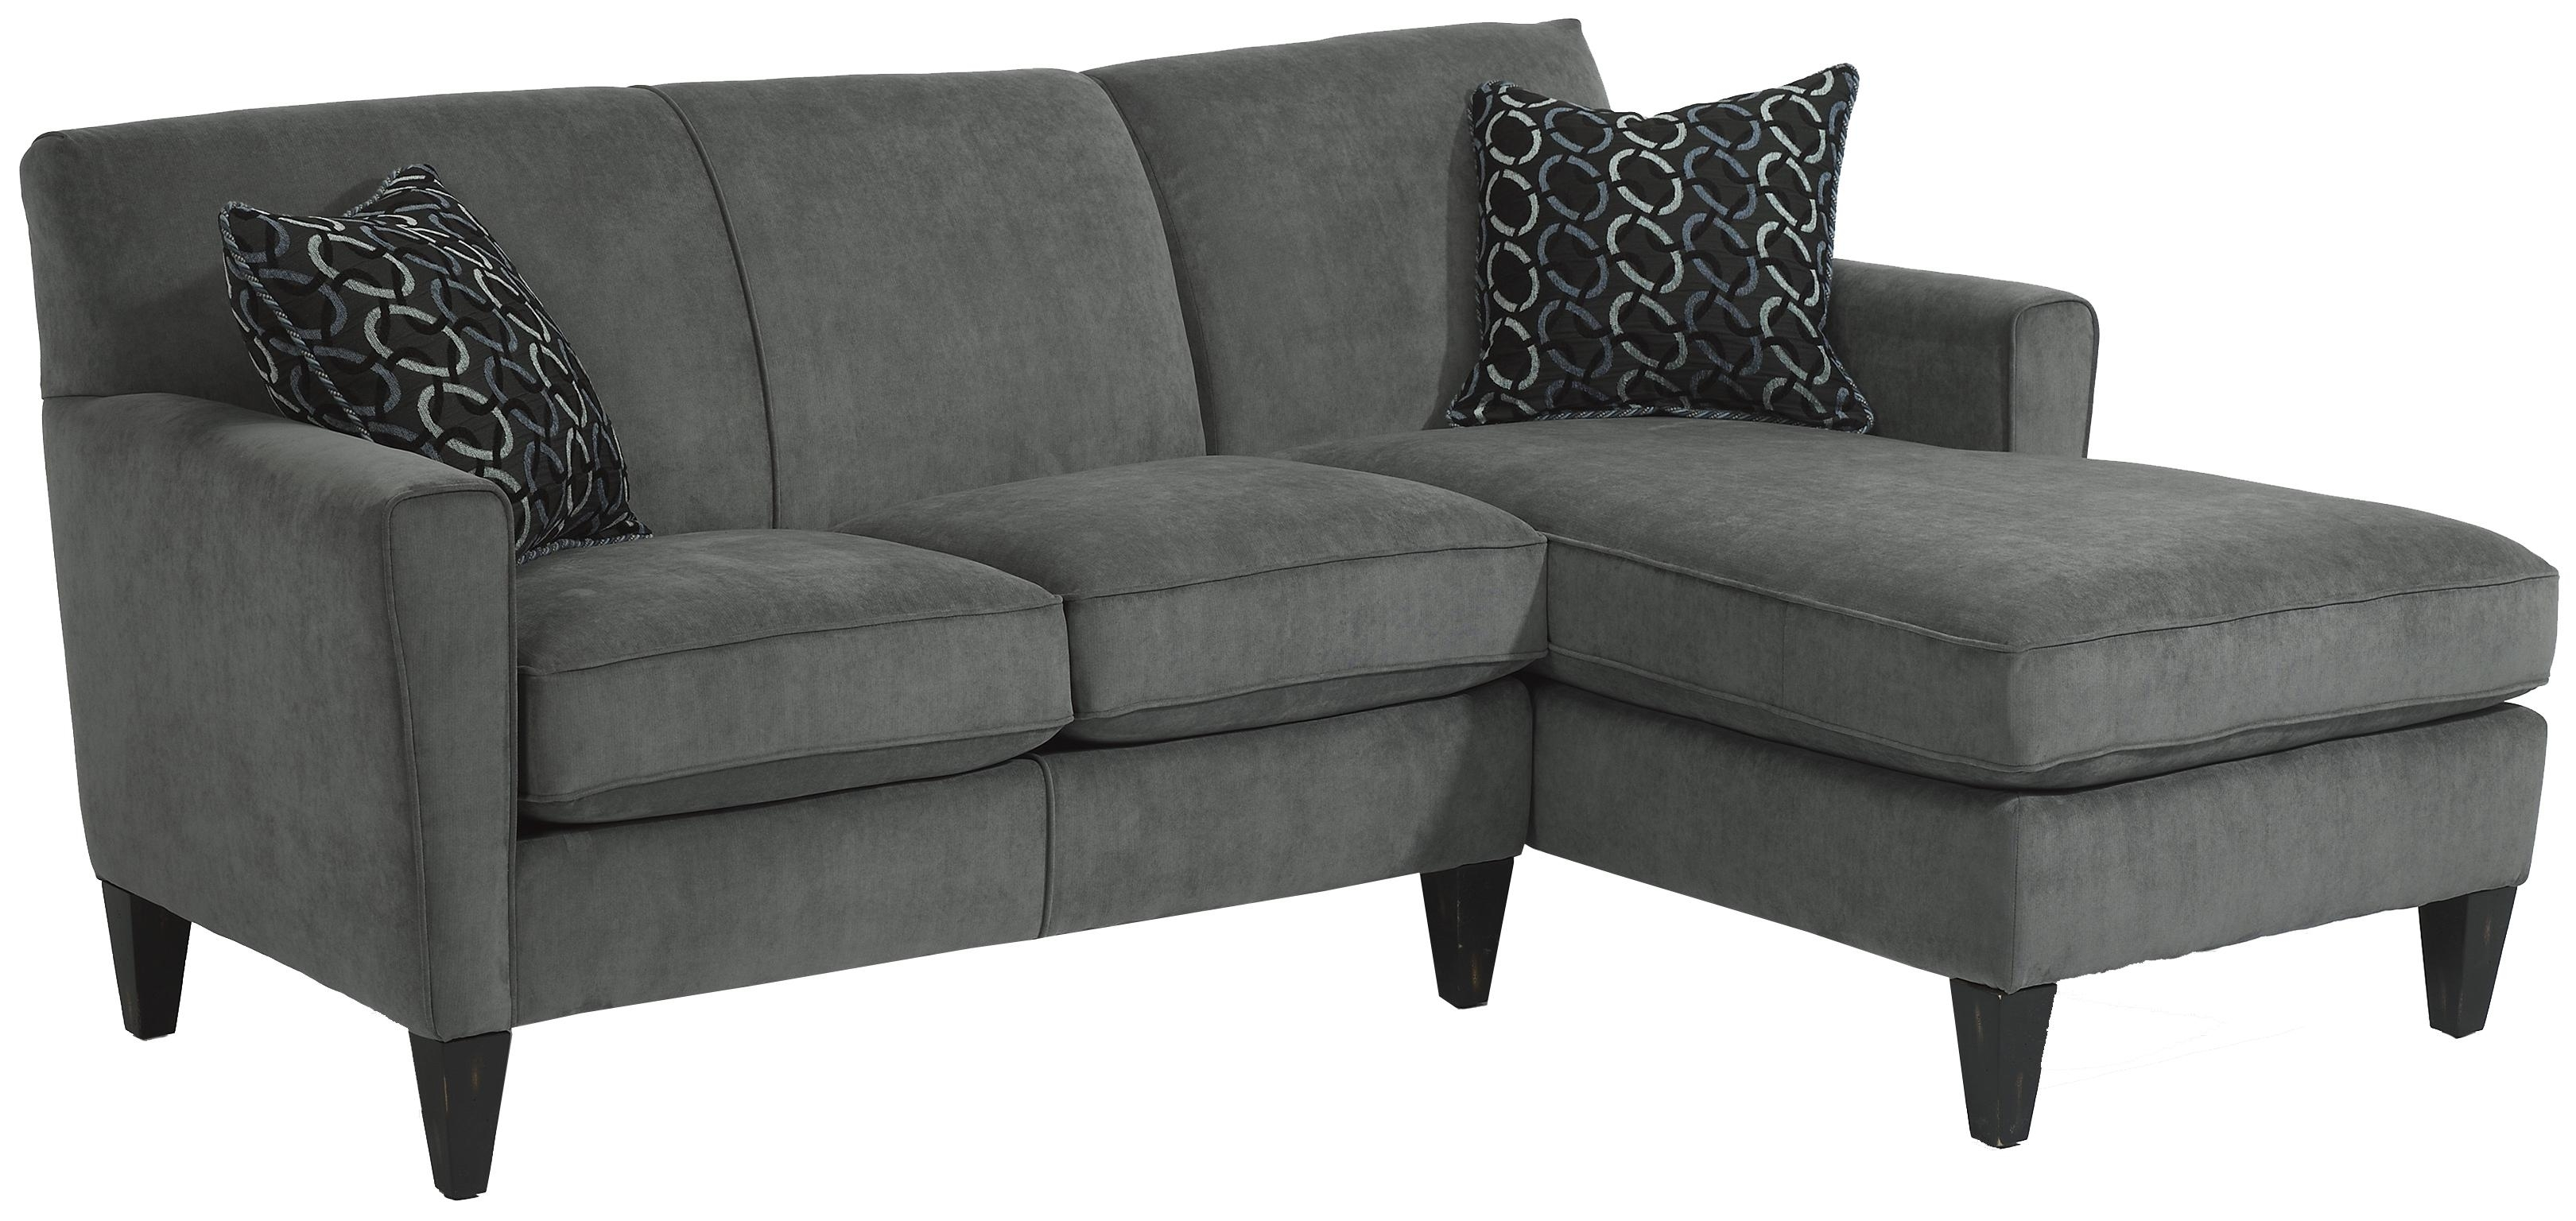 Flexsteel Digby Contemporary Sectional Sofa With Raf Chaise - Ahfa in Norfolk Chocolate 3 Piece Sectionals With Raf Chaise (Image 12 of 30)